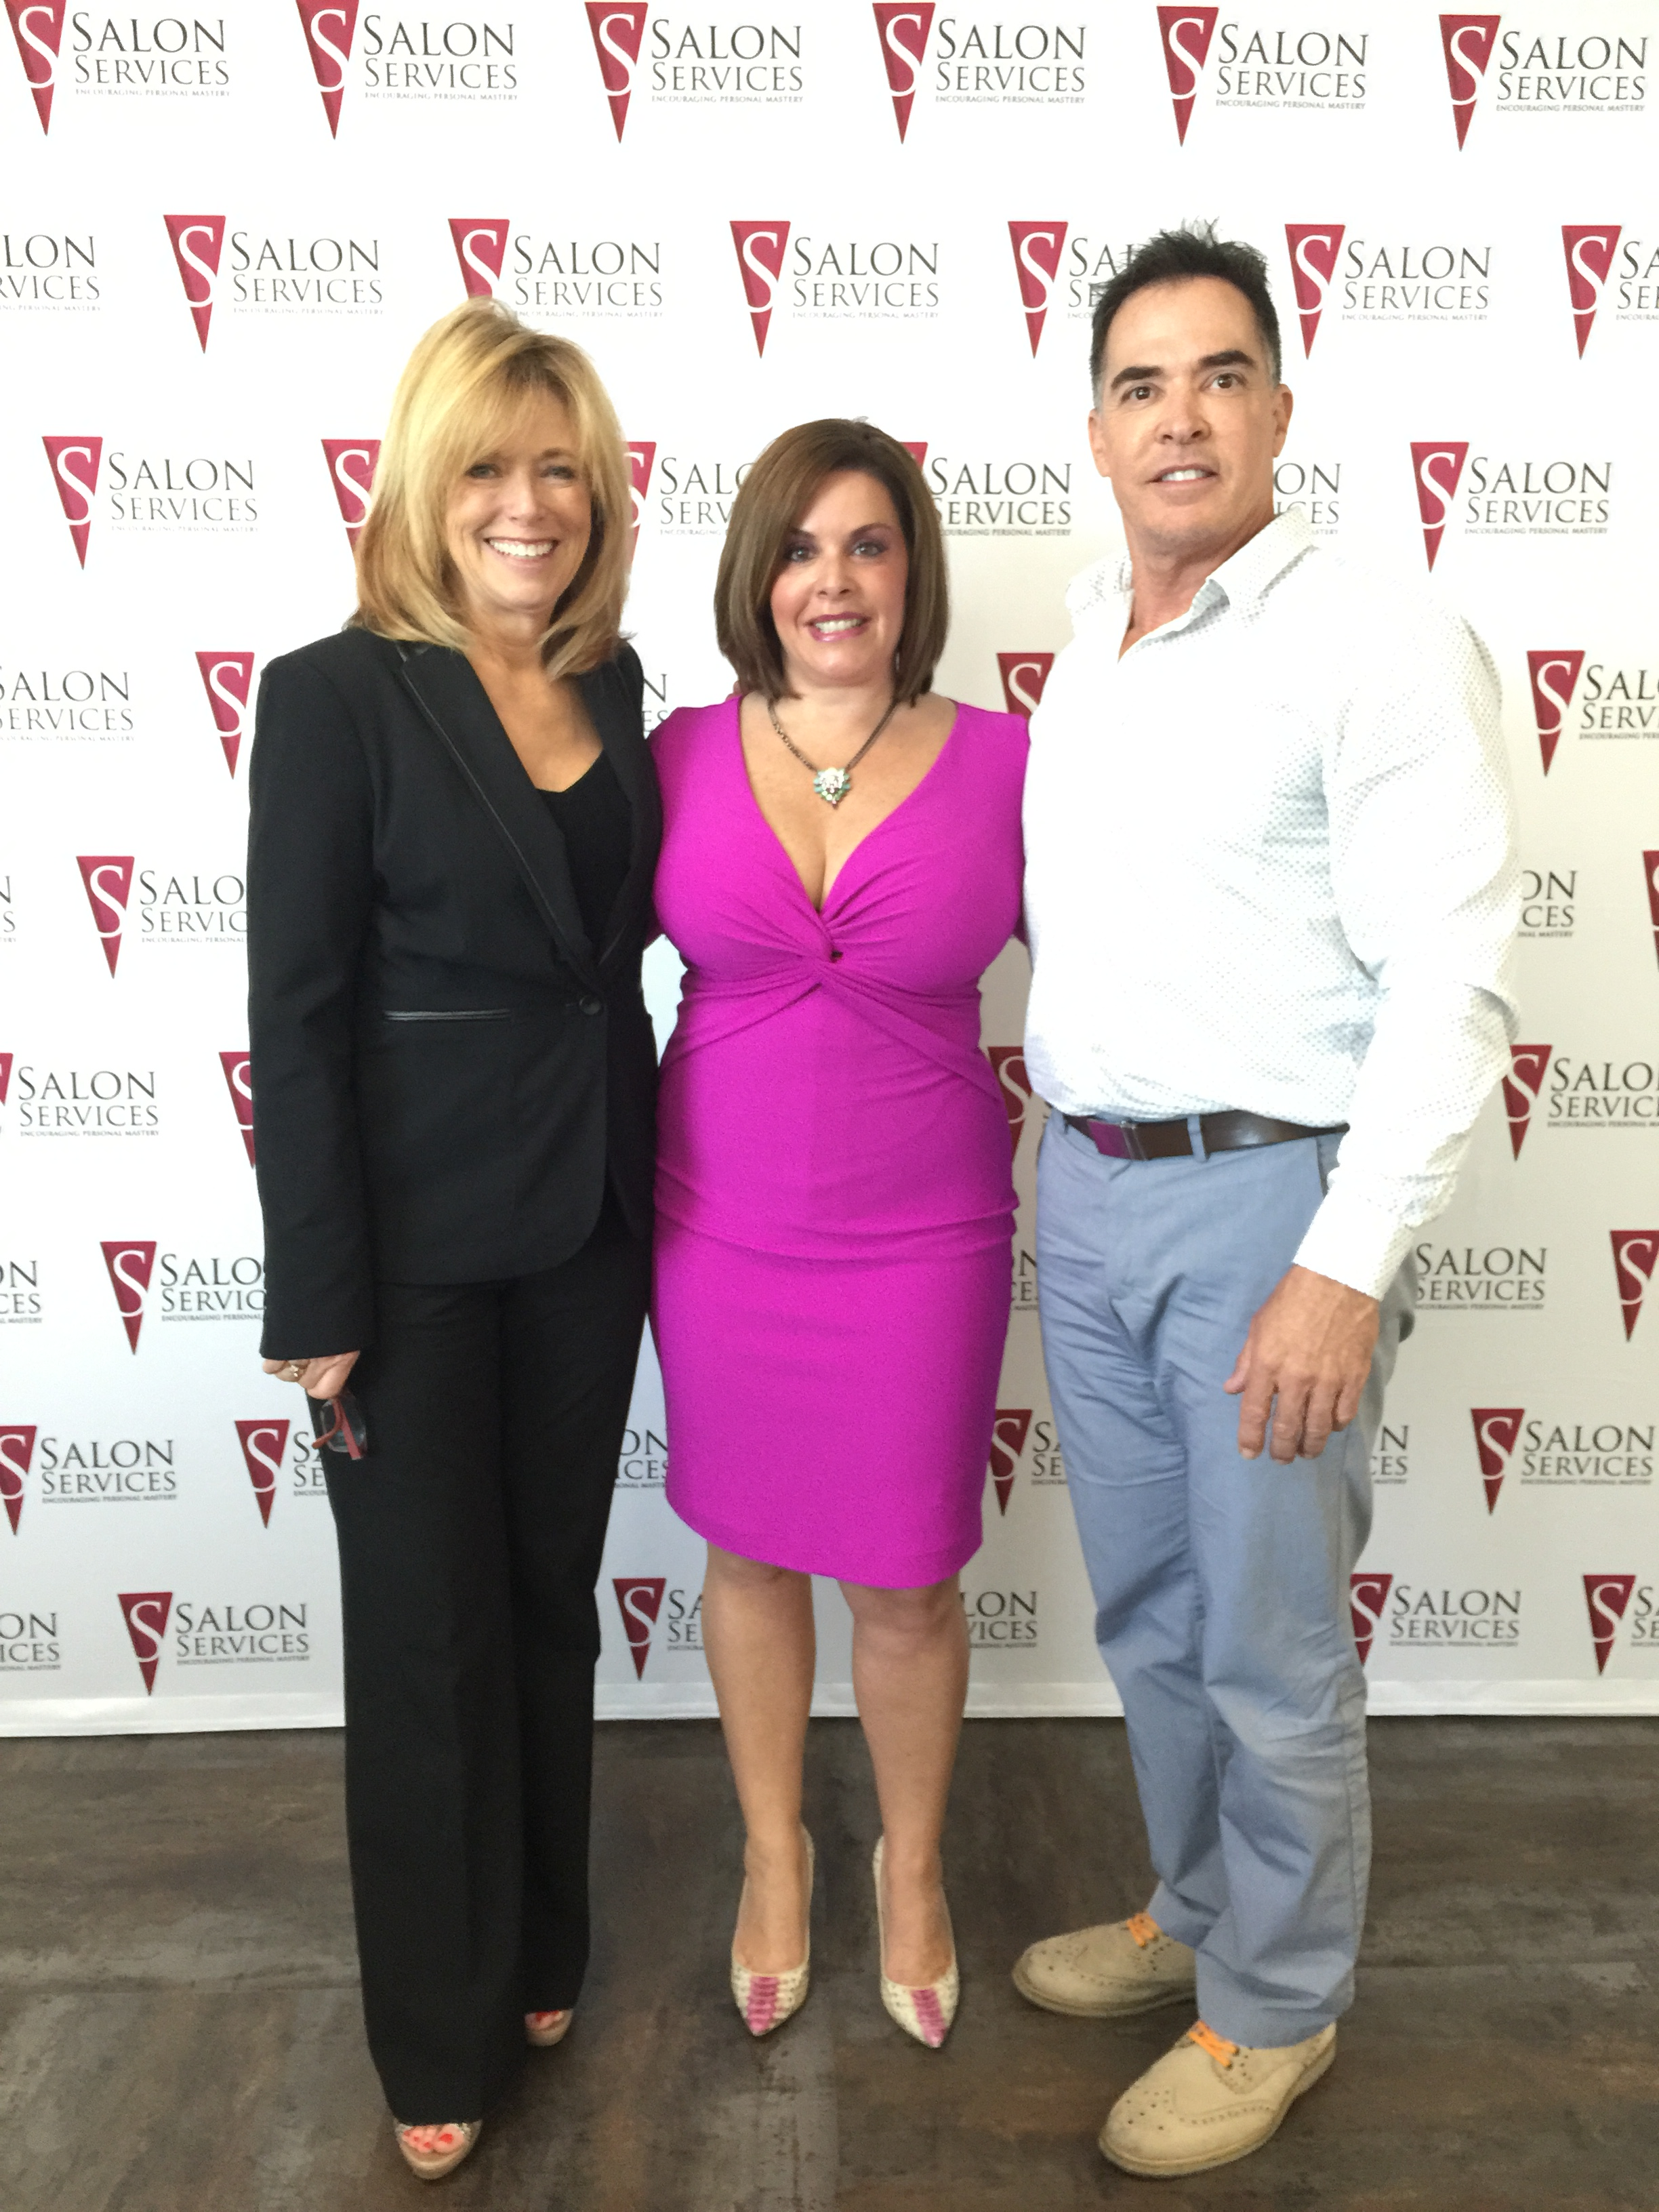 From left to right:  Sydney Berry owner and president of Salon Services, Alicia Grande, CEO of Grande Naturals and George Learned, owner and vice president of Salon Services.